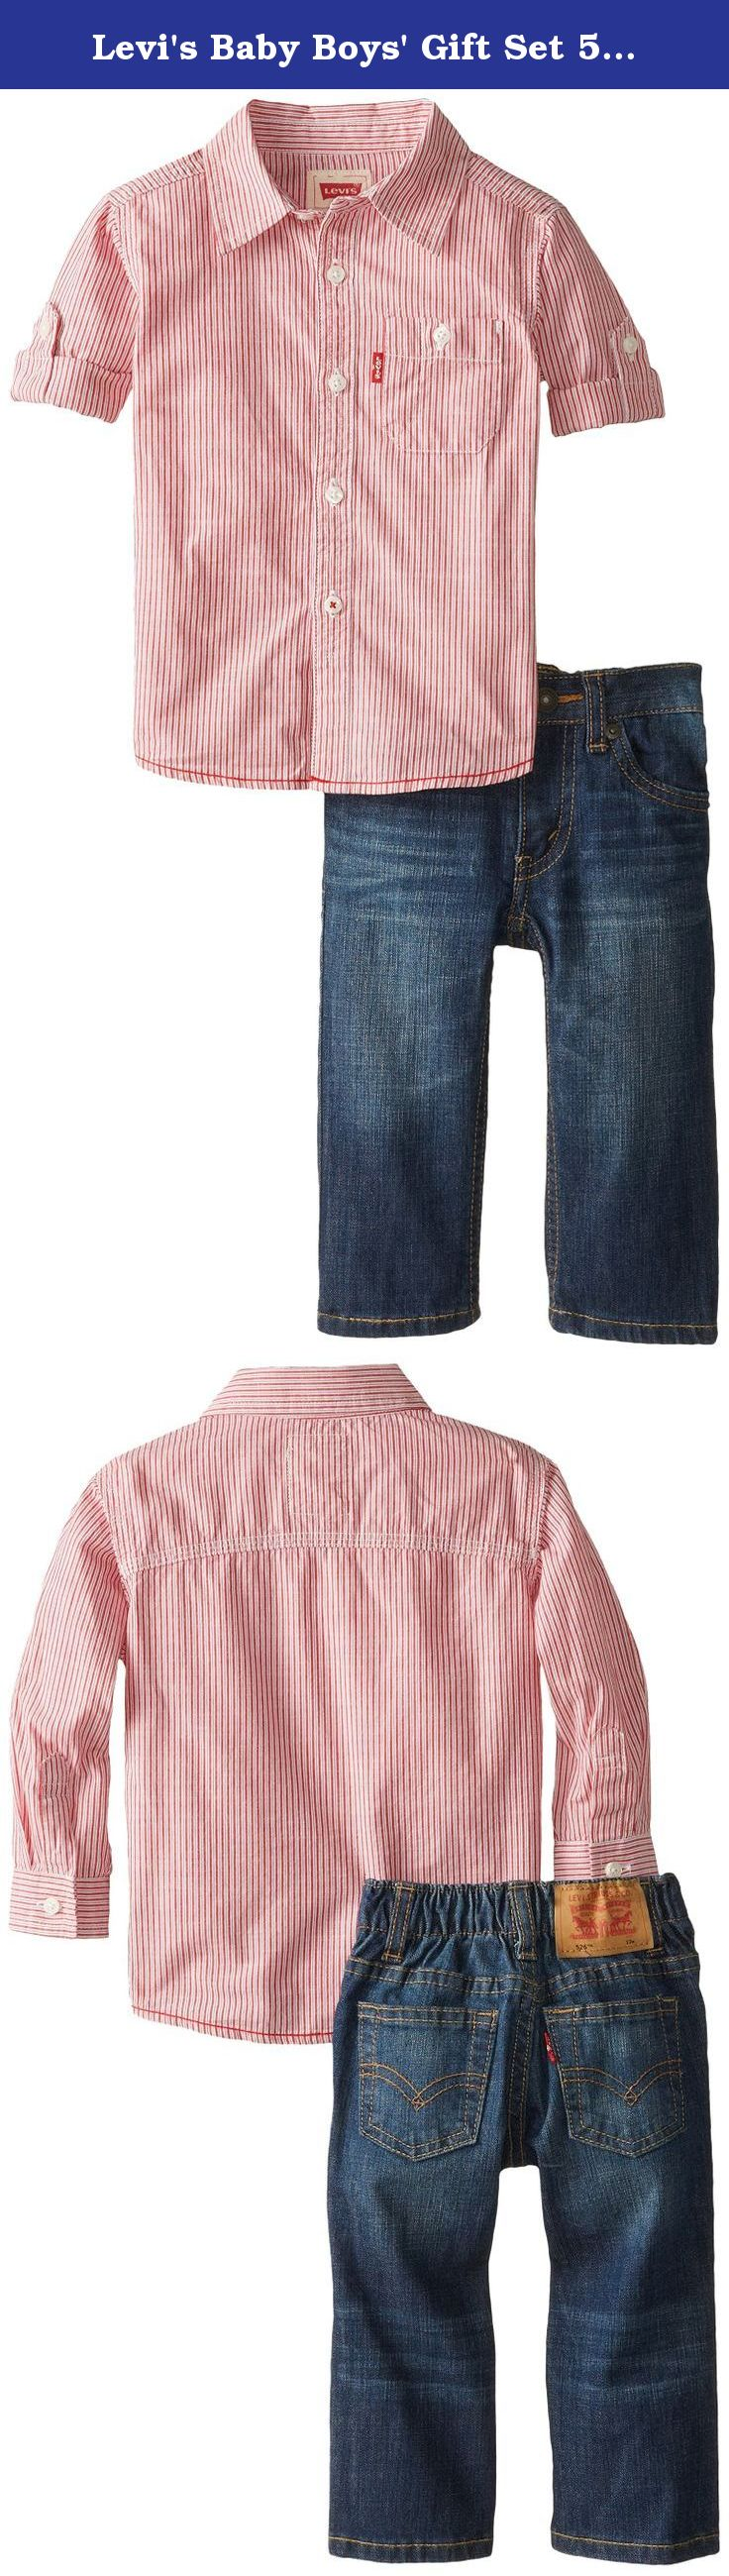 19234287 Levi's Baby Boys' Gift Set 526 Elastic Waist Jean and Long Sleeve Woven Top,